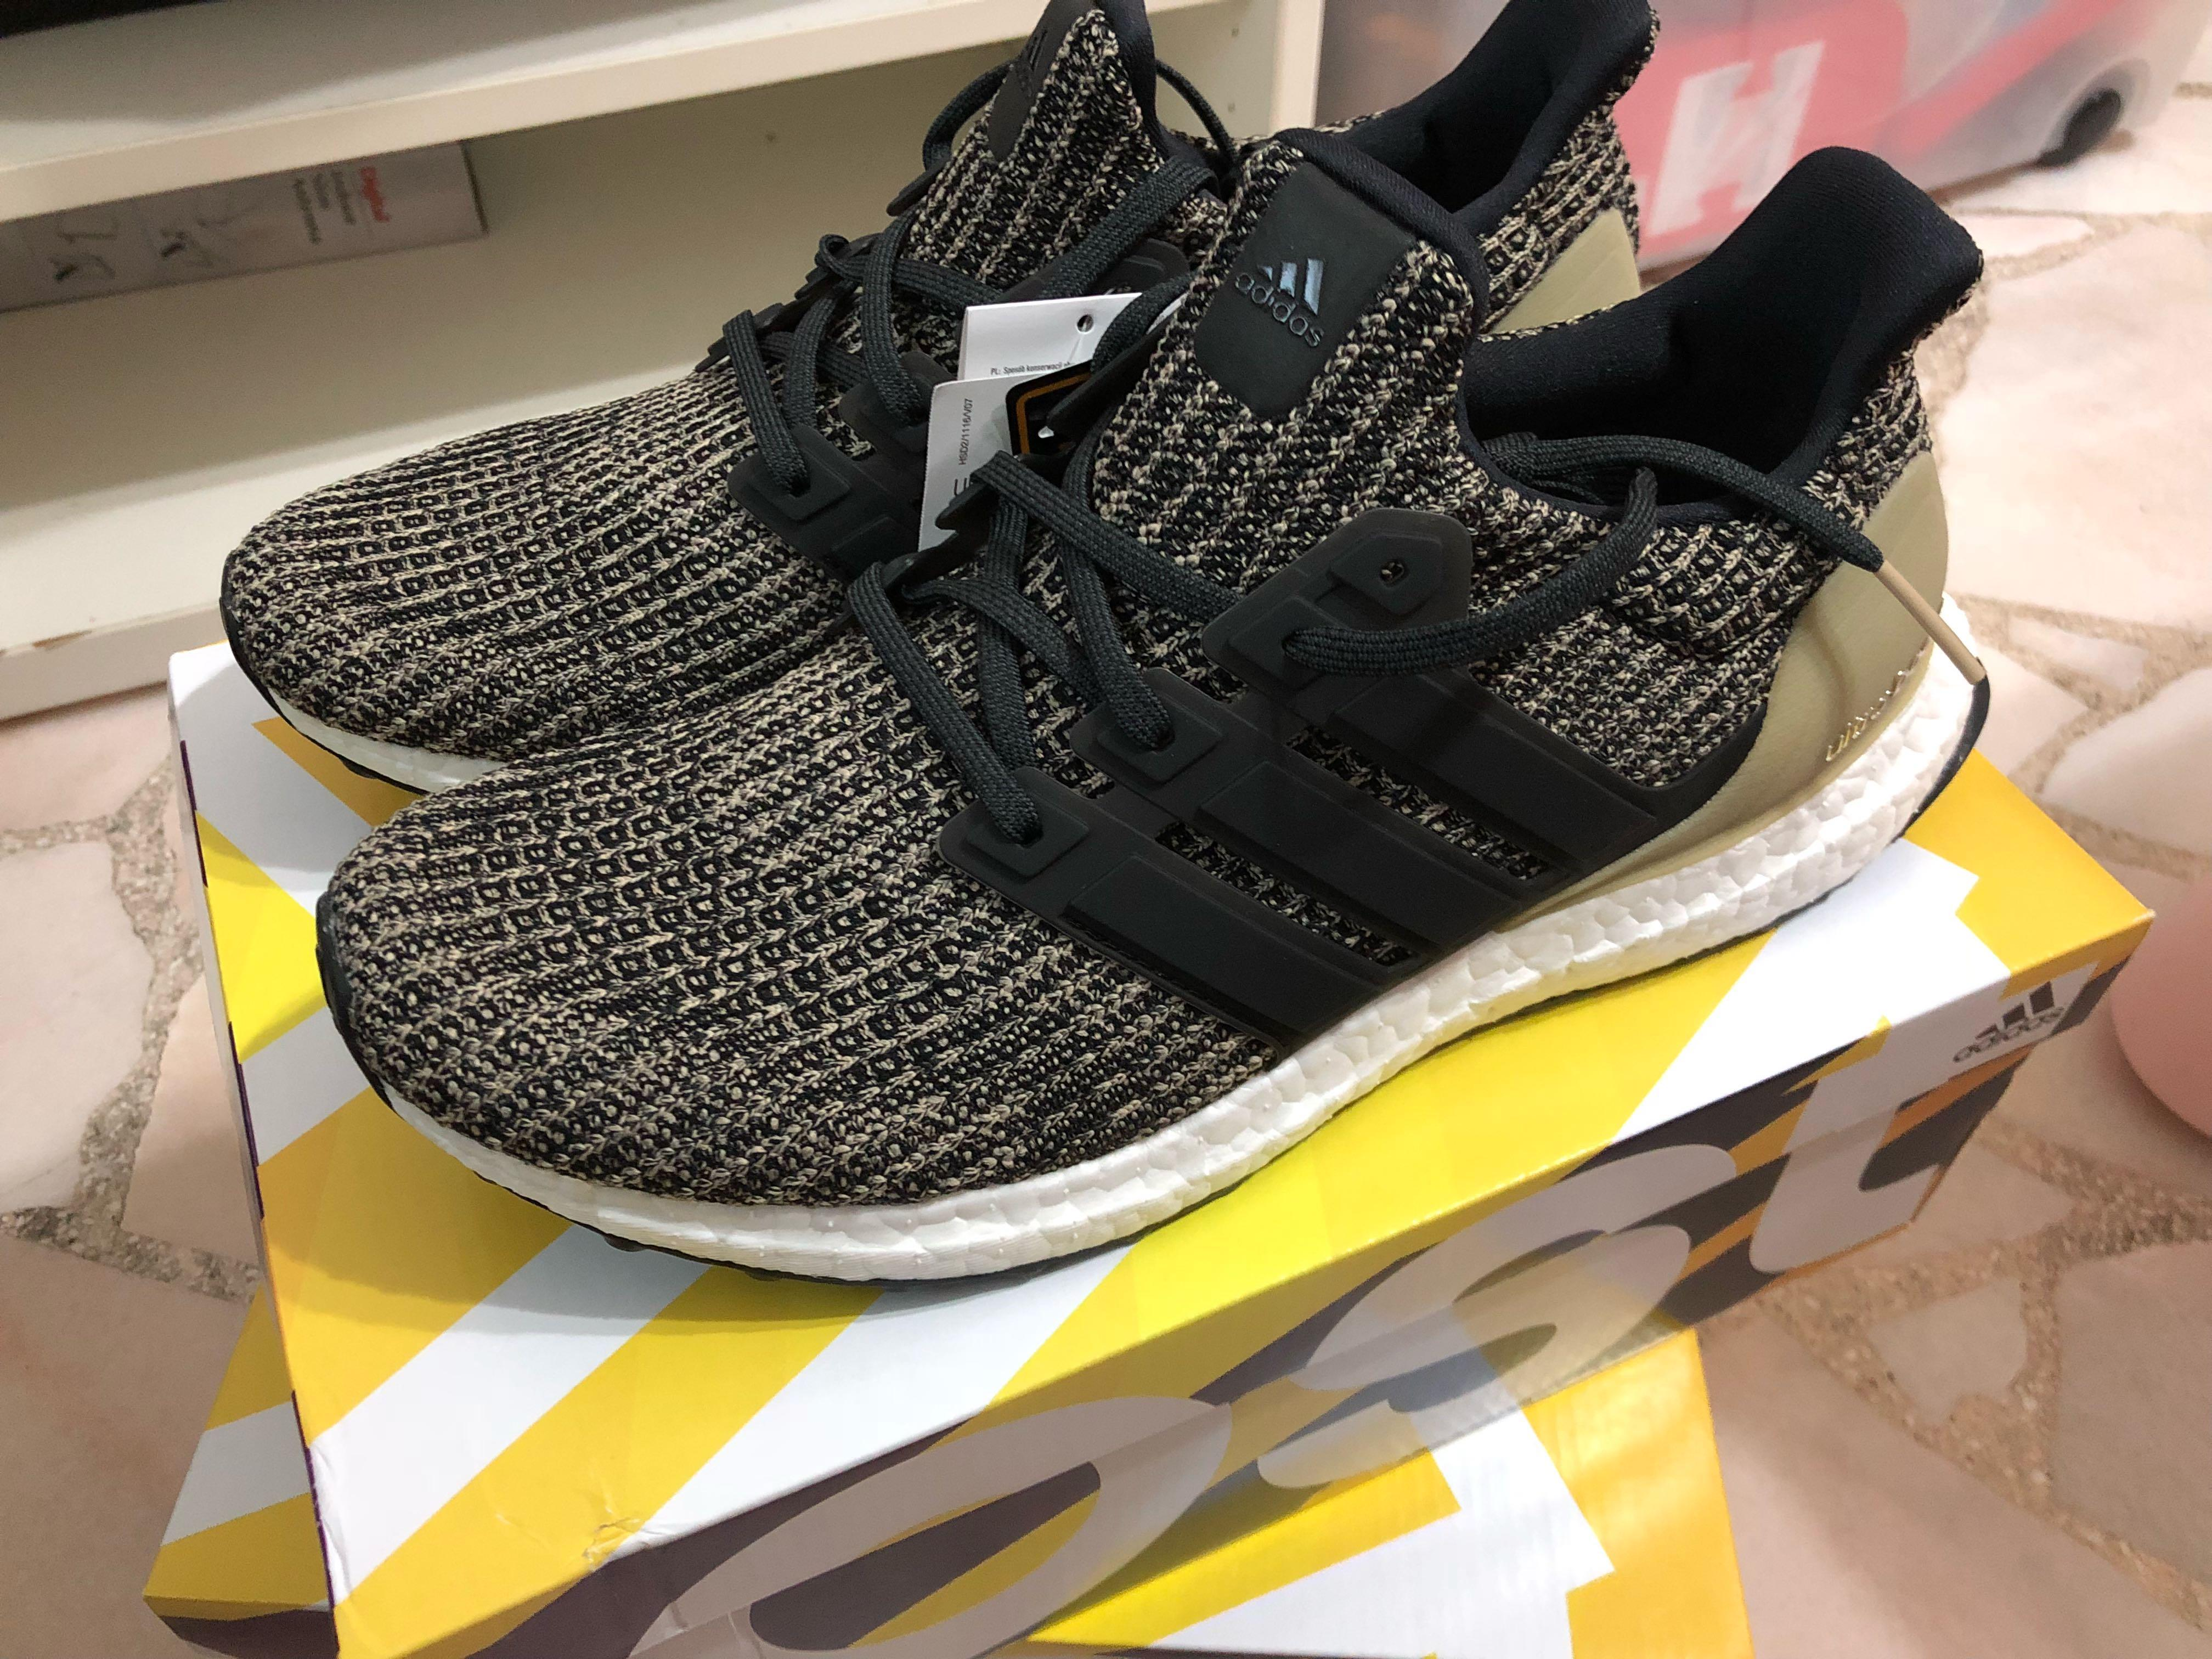 new products 39e86 af248 Adidas Ultra Boost 4.0 Core Black/Raw Gold, Men's Fashion ...